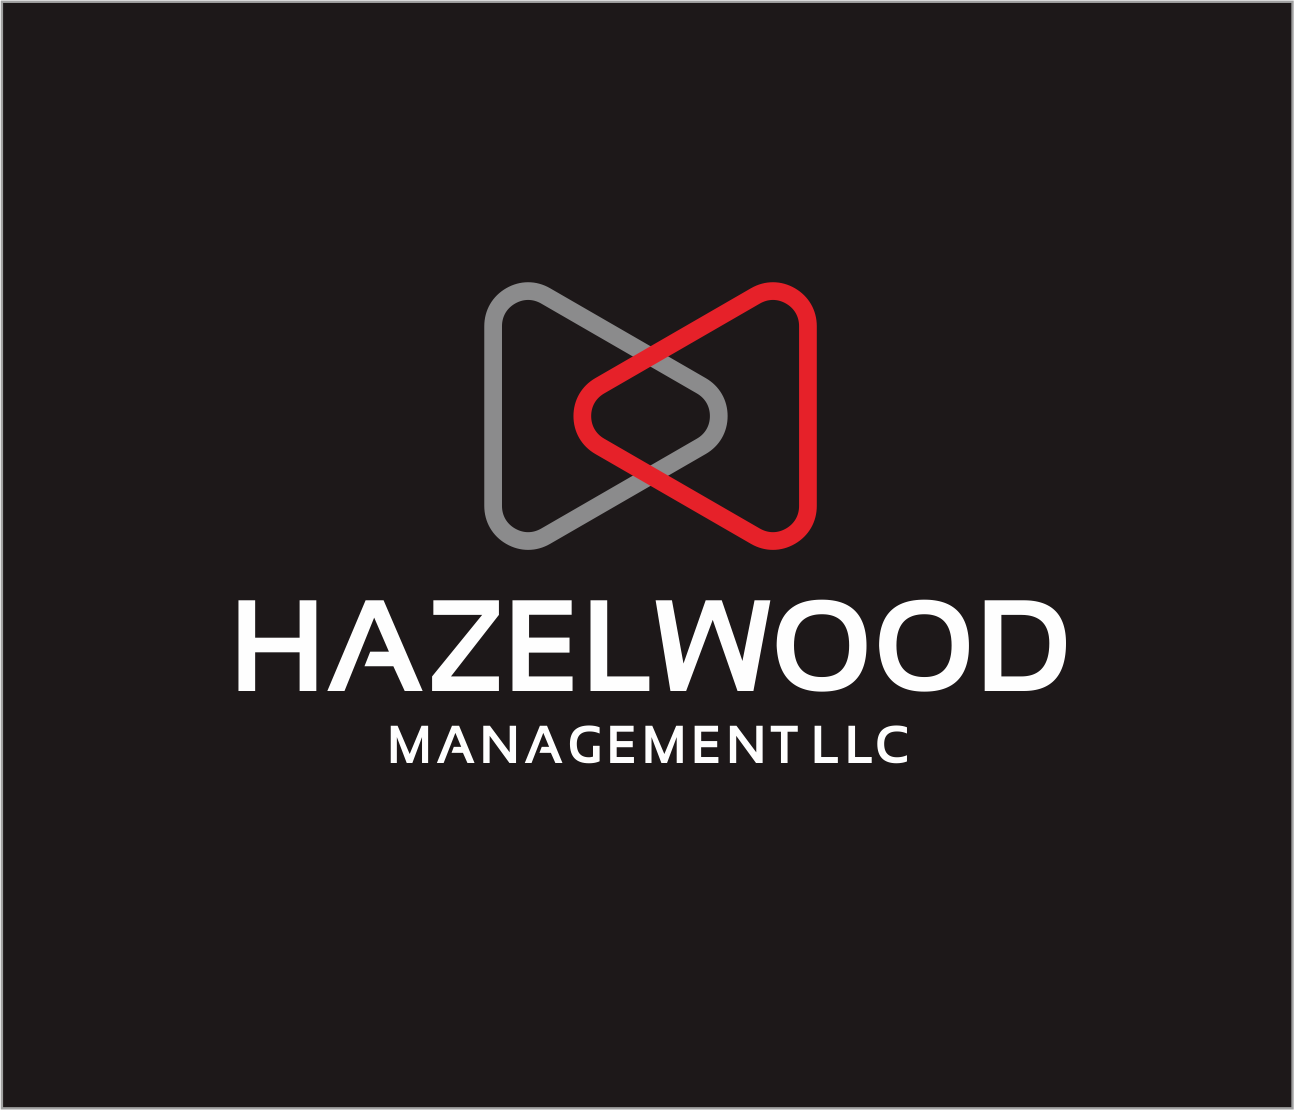 Logo Design by Armada Jamaluddin - Entry No. 66 in the Logo Design Contest Hazelwood Management LLC Logo Design.